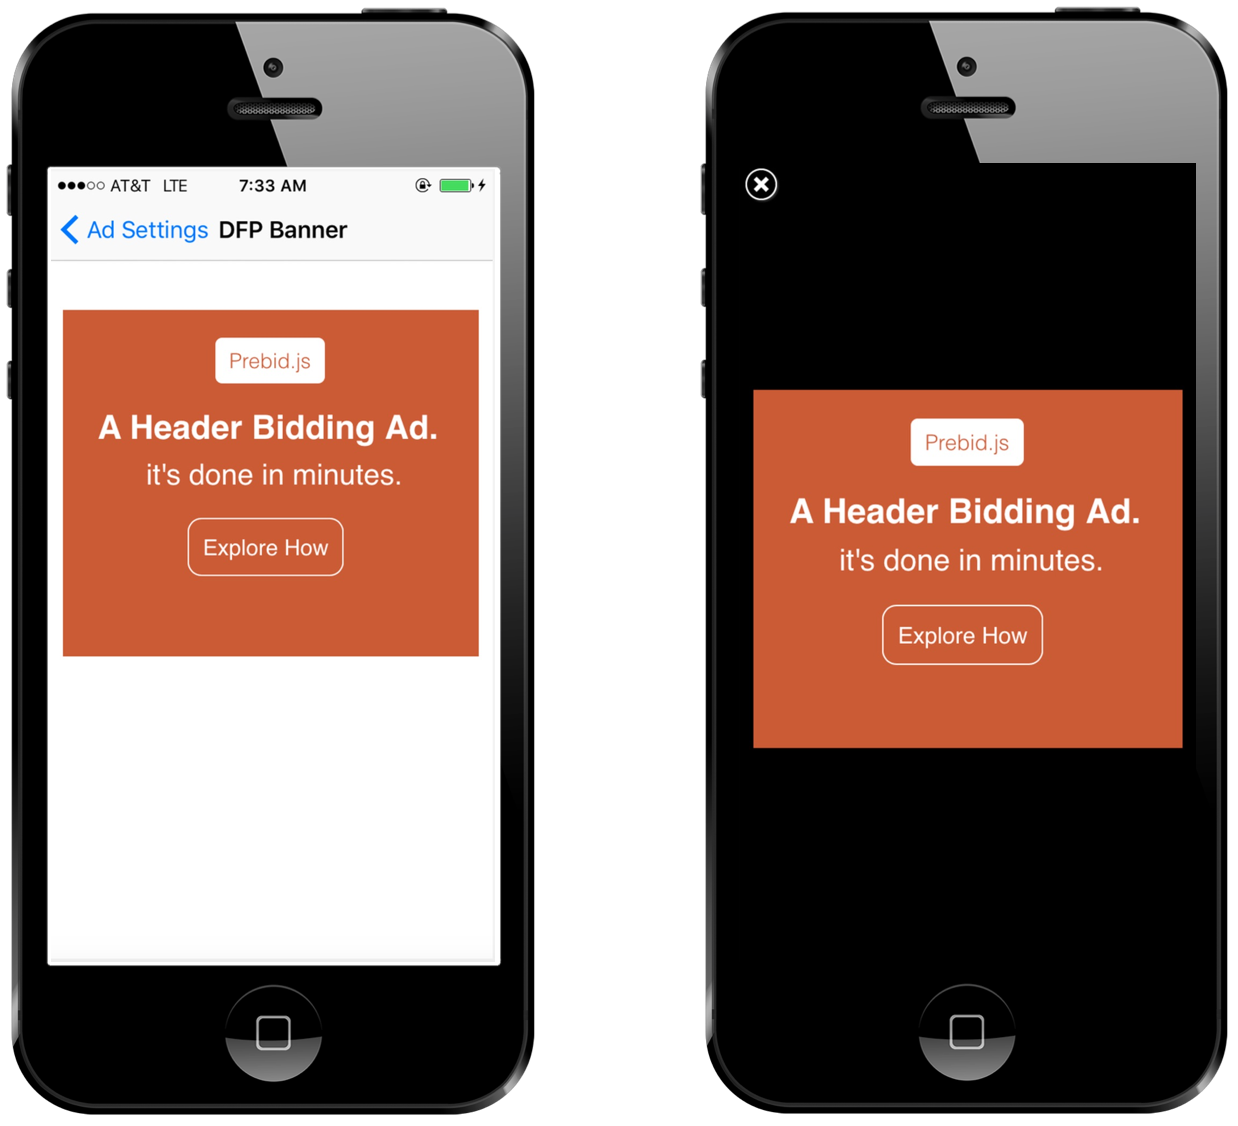 Prebid Mobile - Banner and Interstitial Ads running on iOS